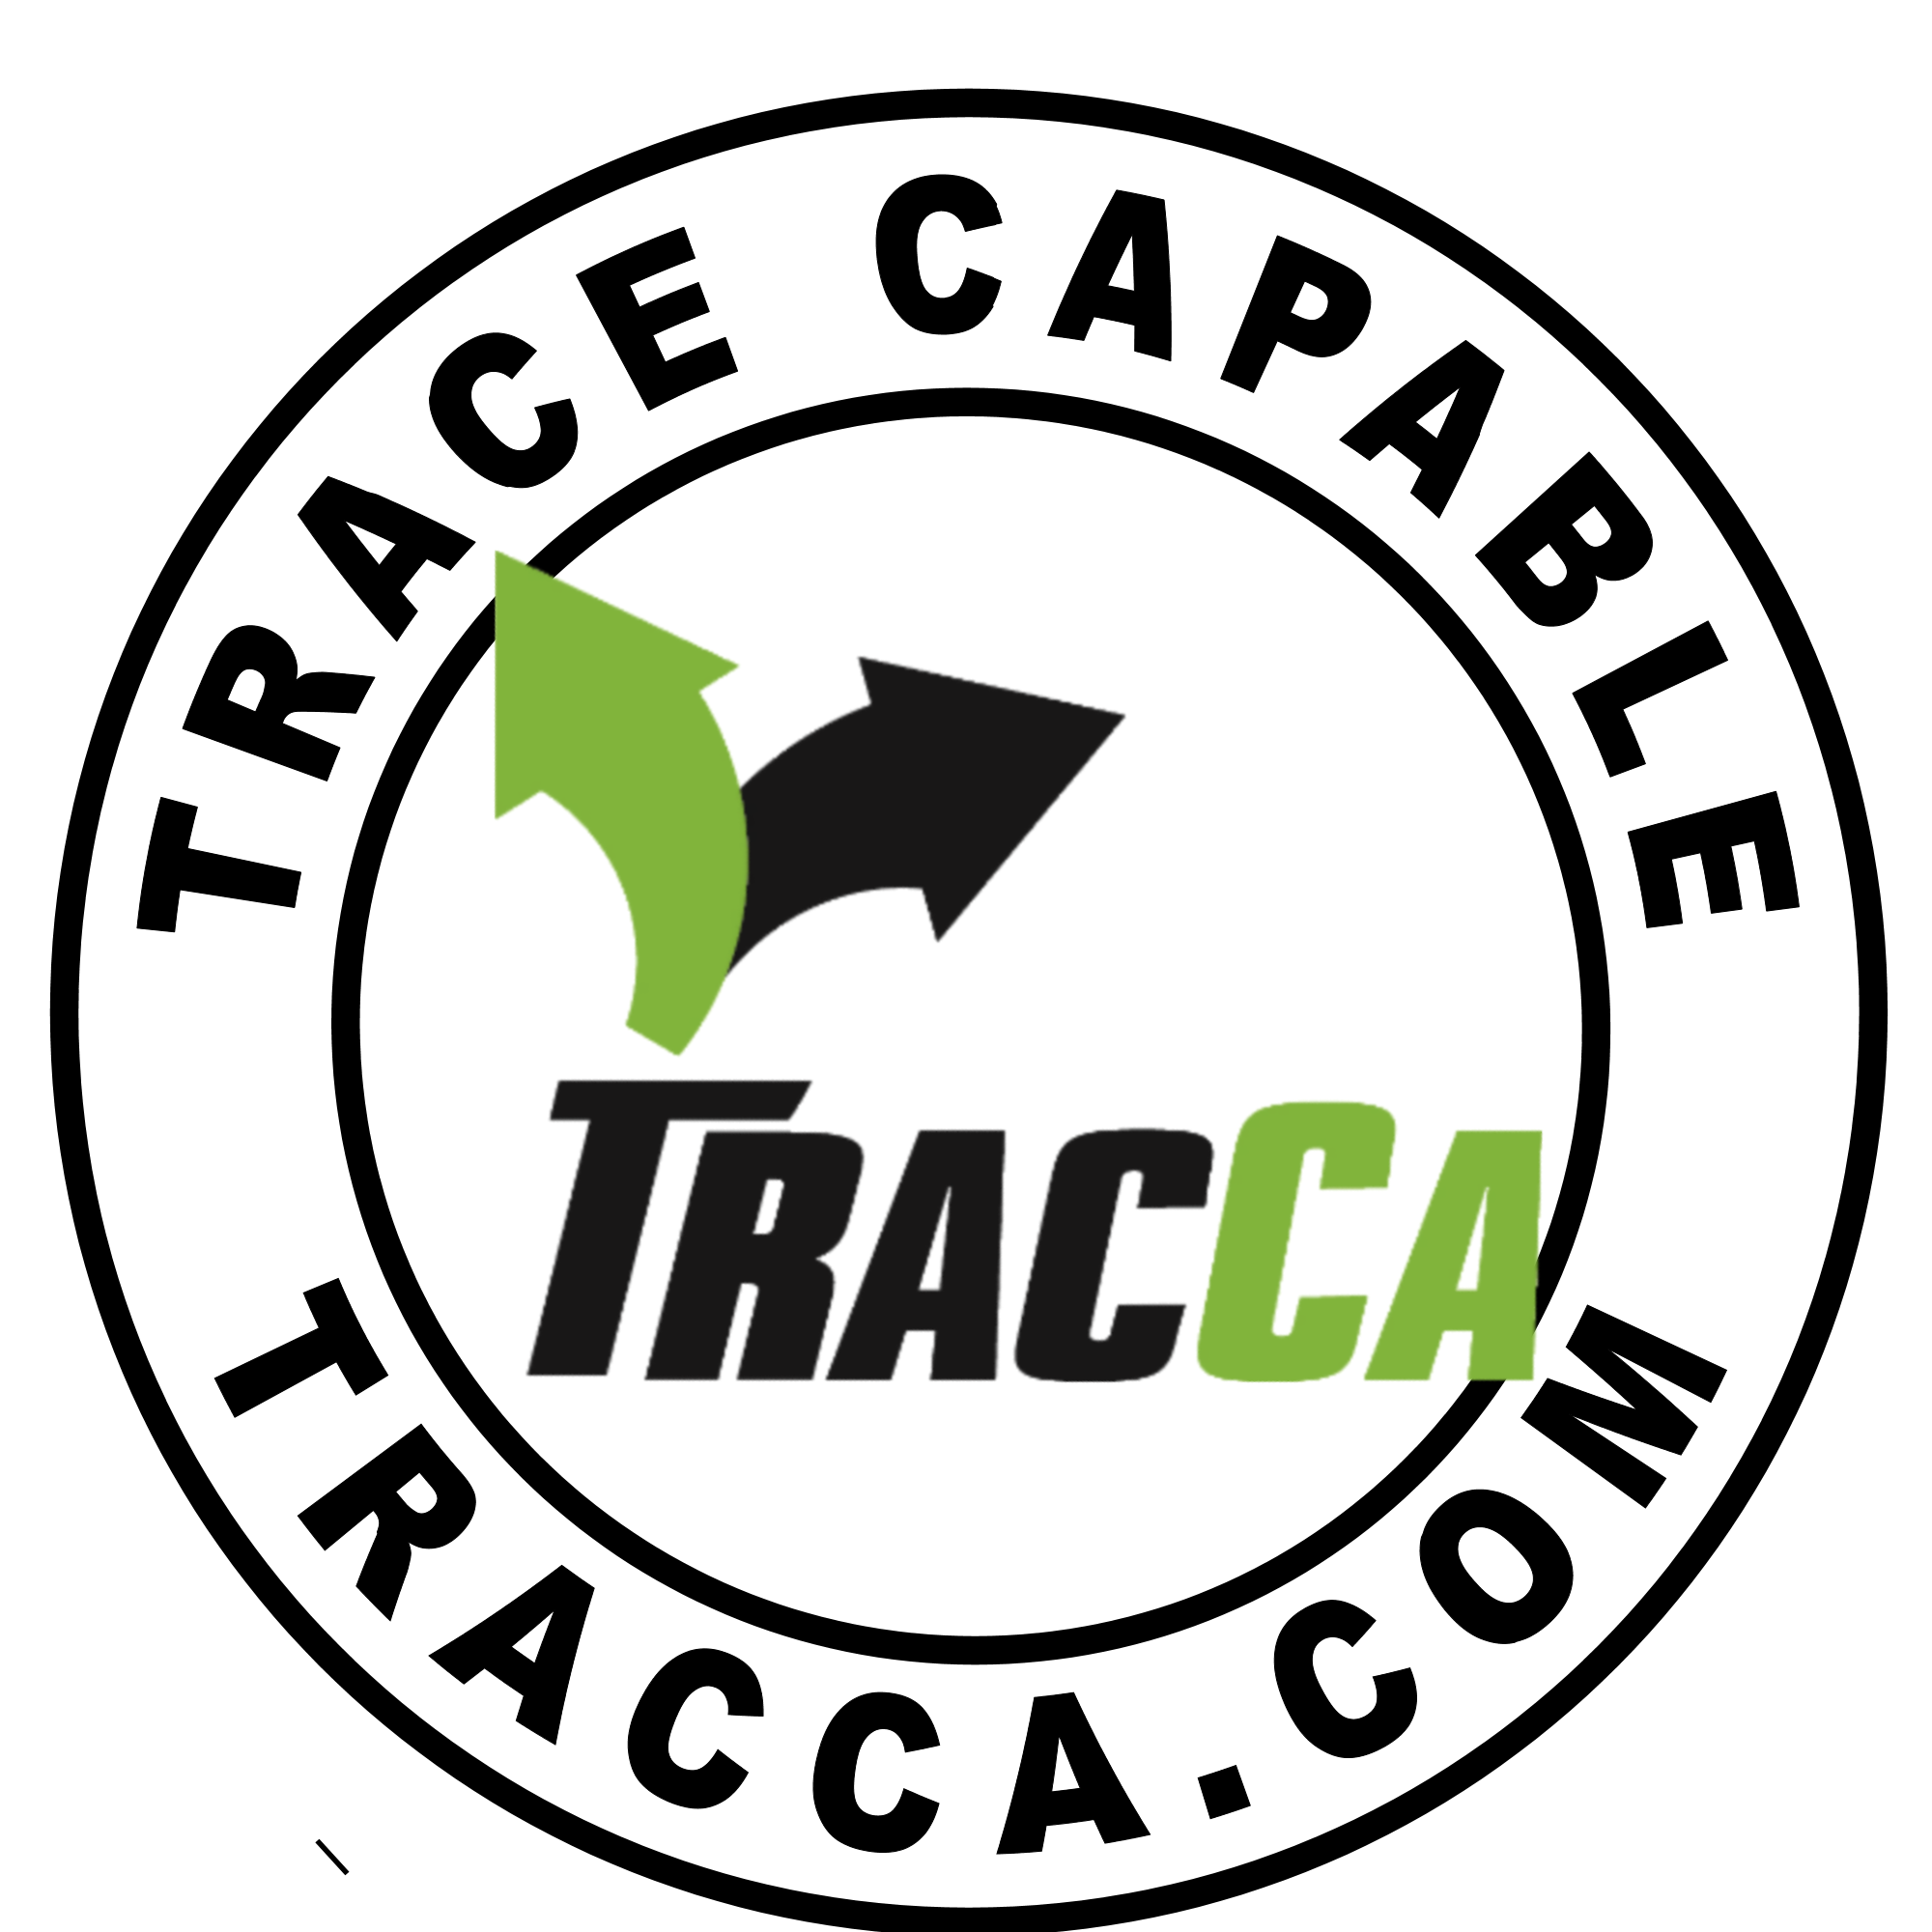 The Tracca Seal; this is Trace-Capable